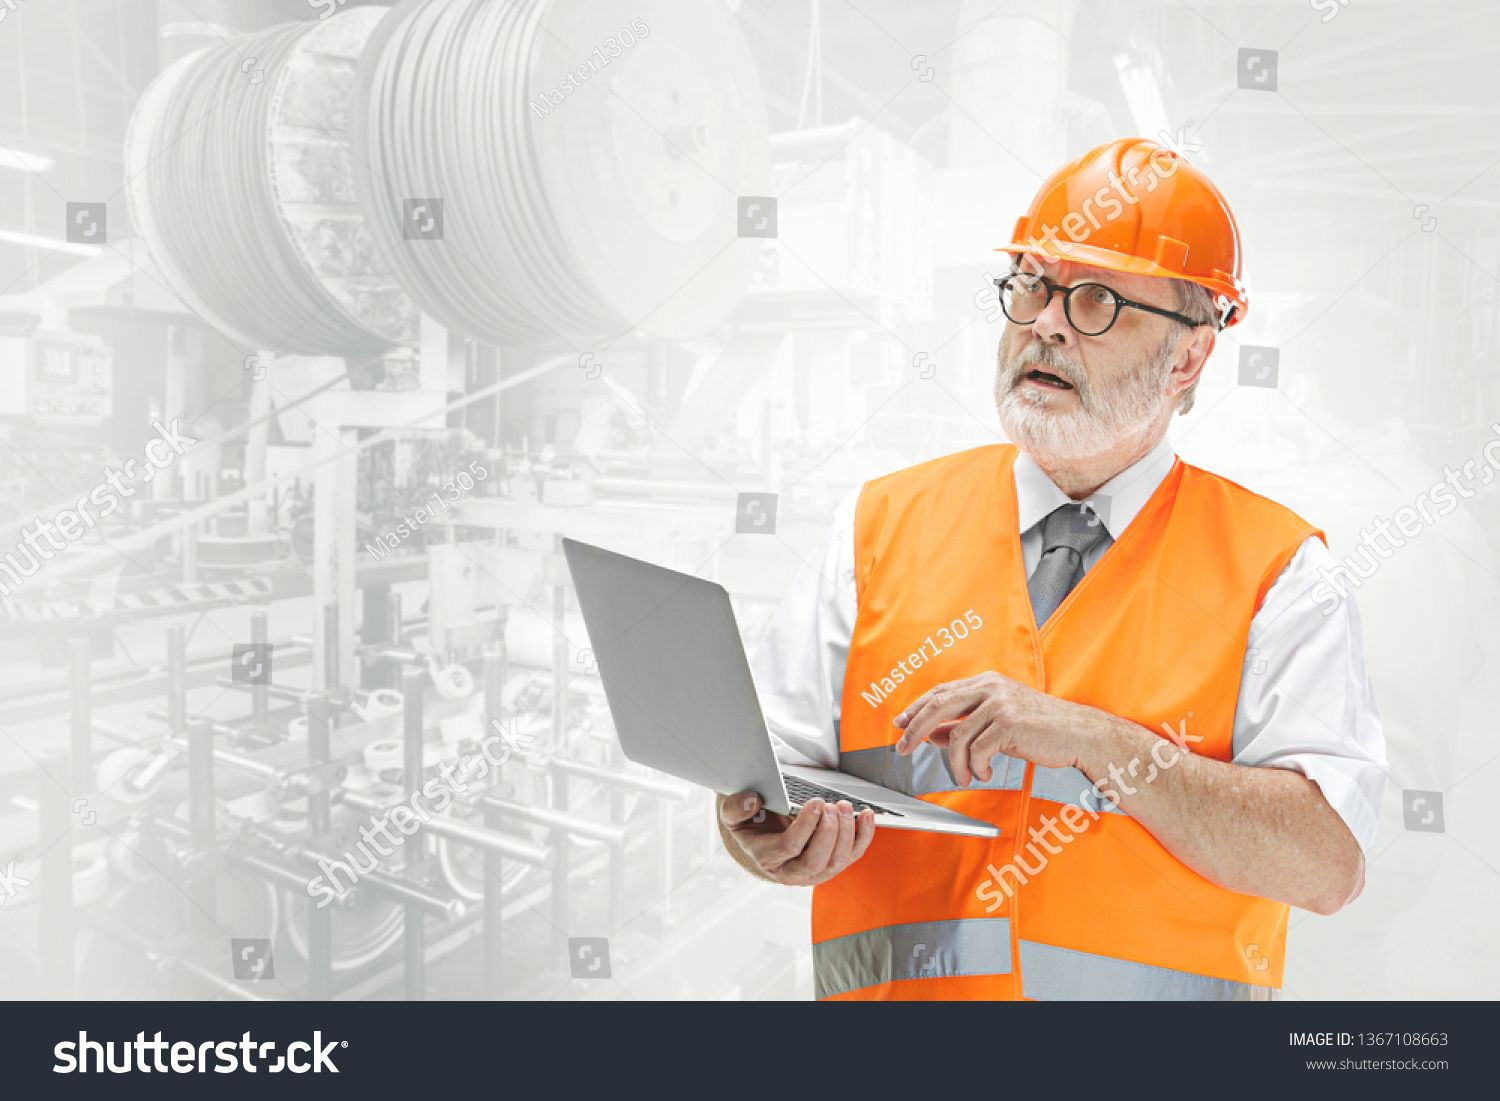 The builder in a construction vest and an orange helmet